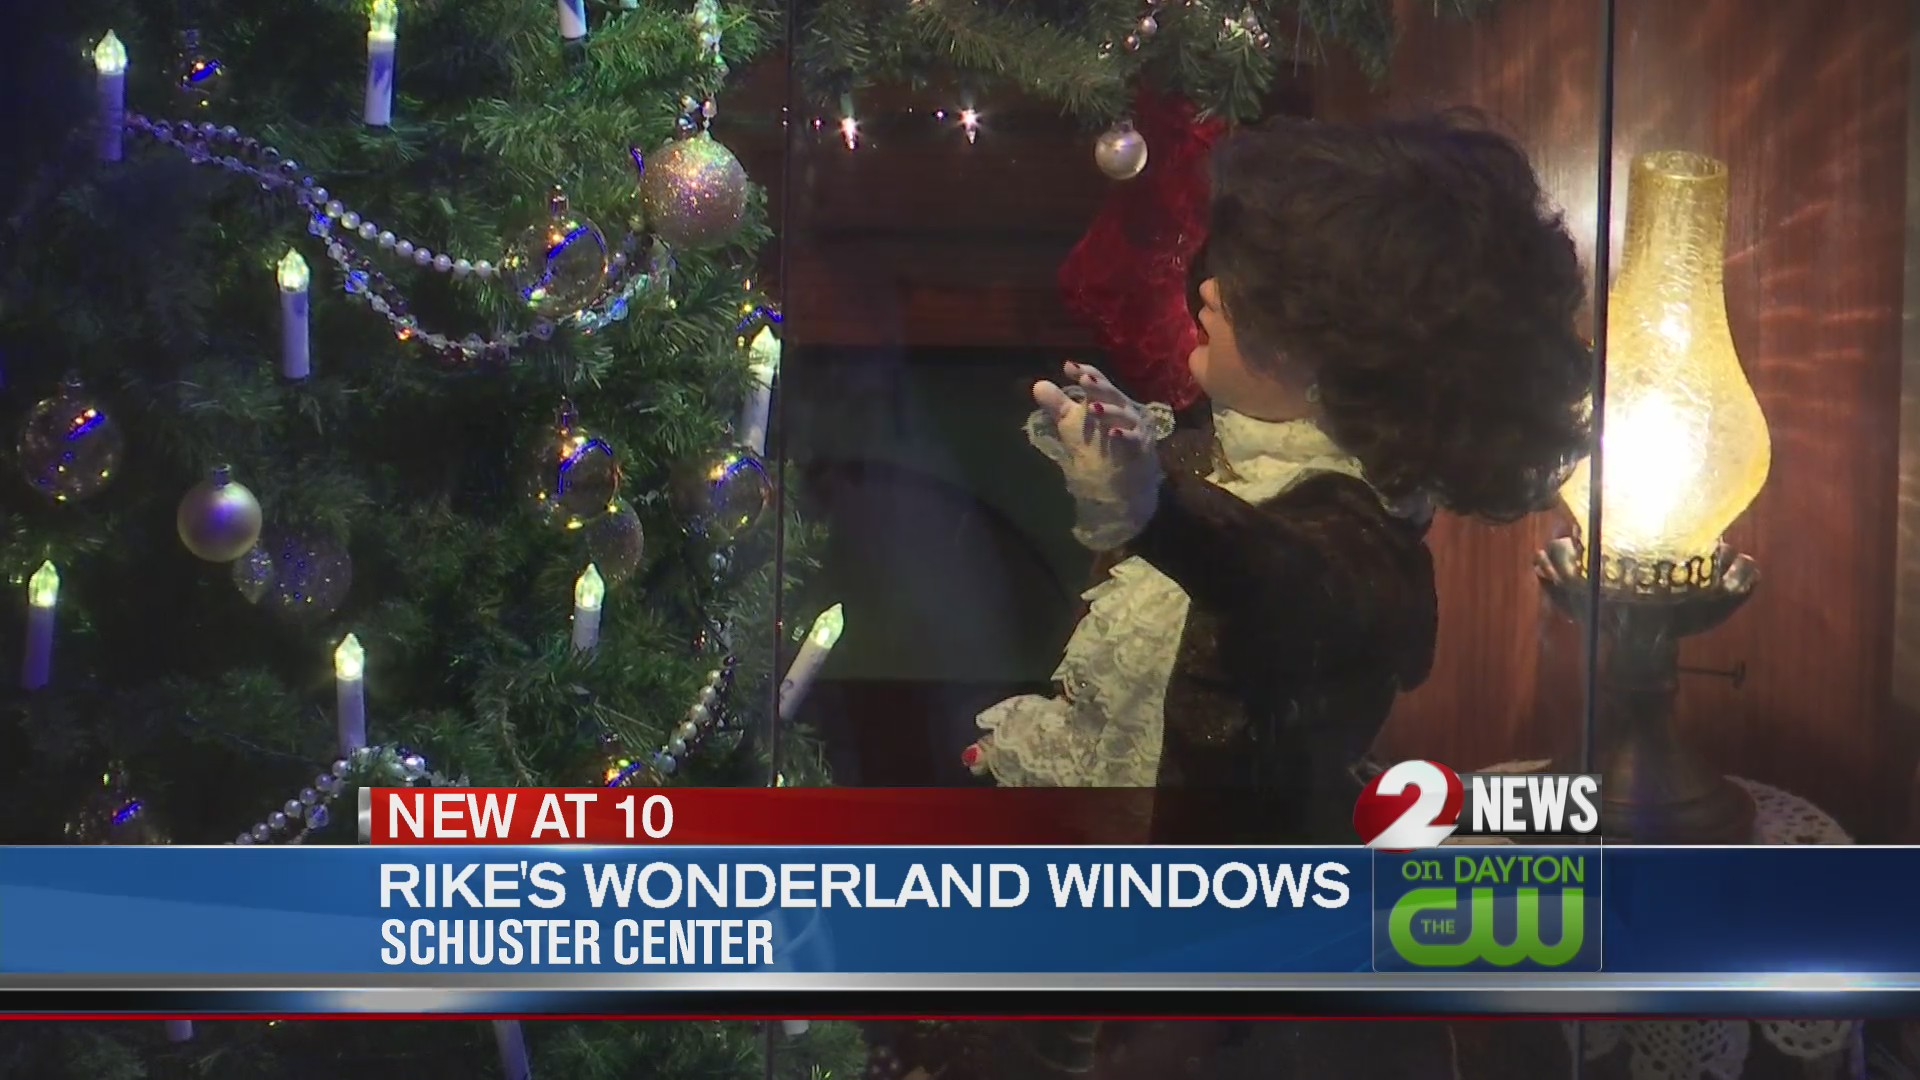 Rike's Wonderland Windows